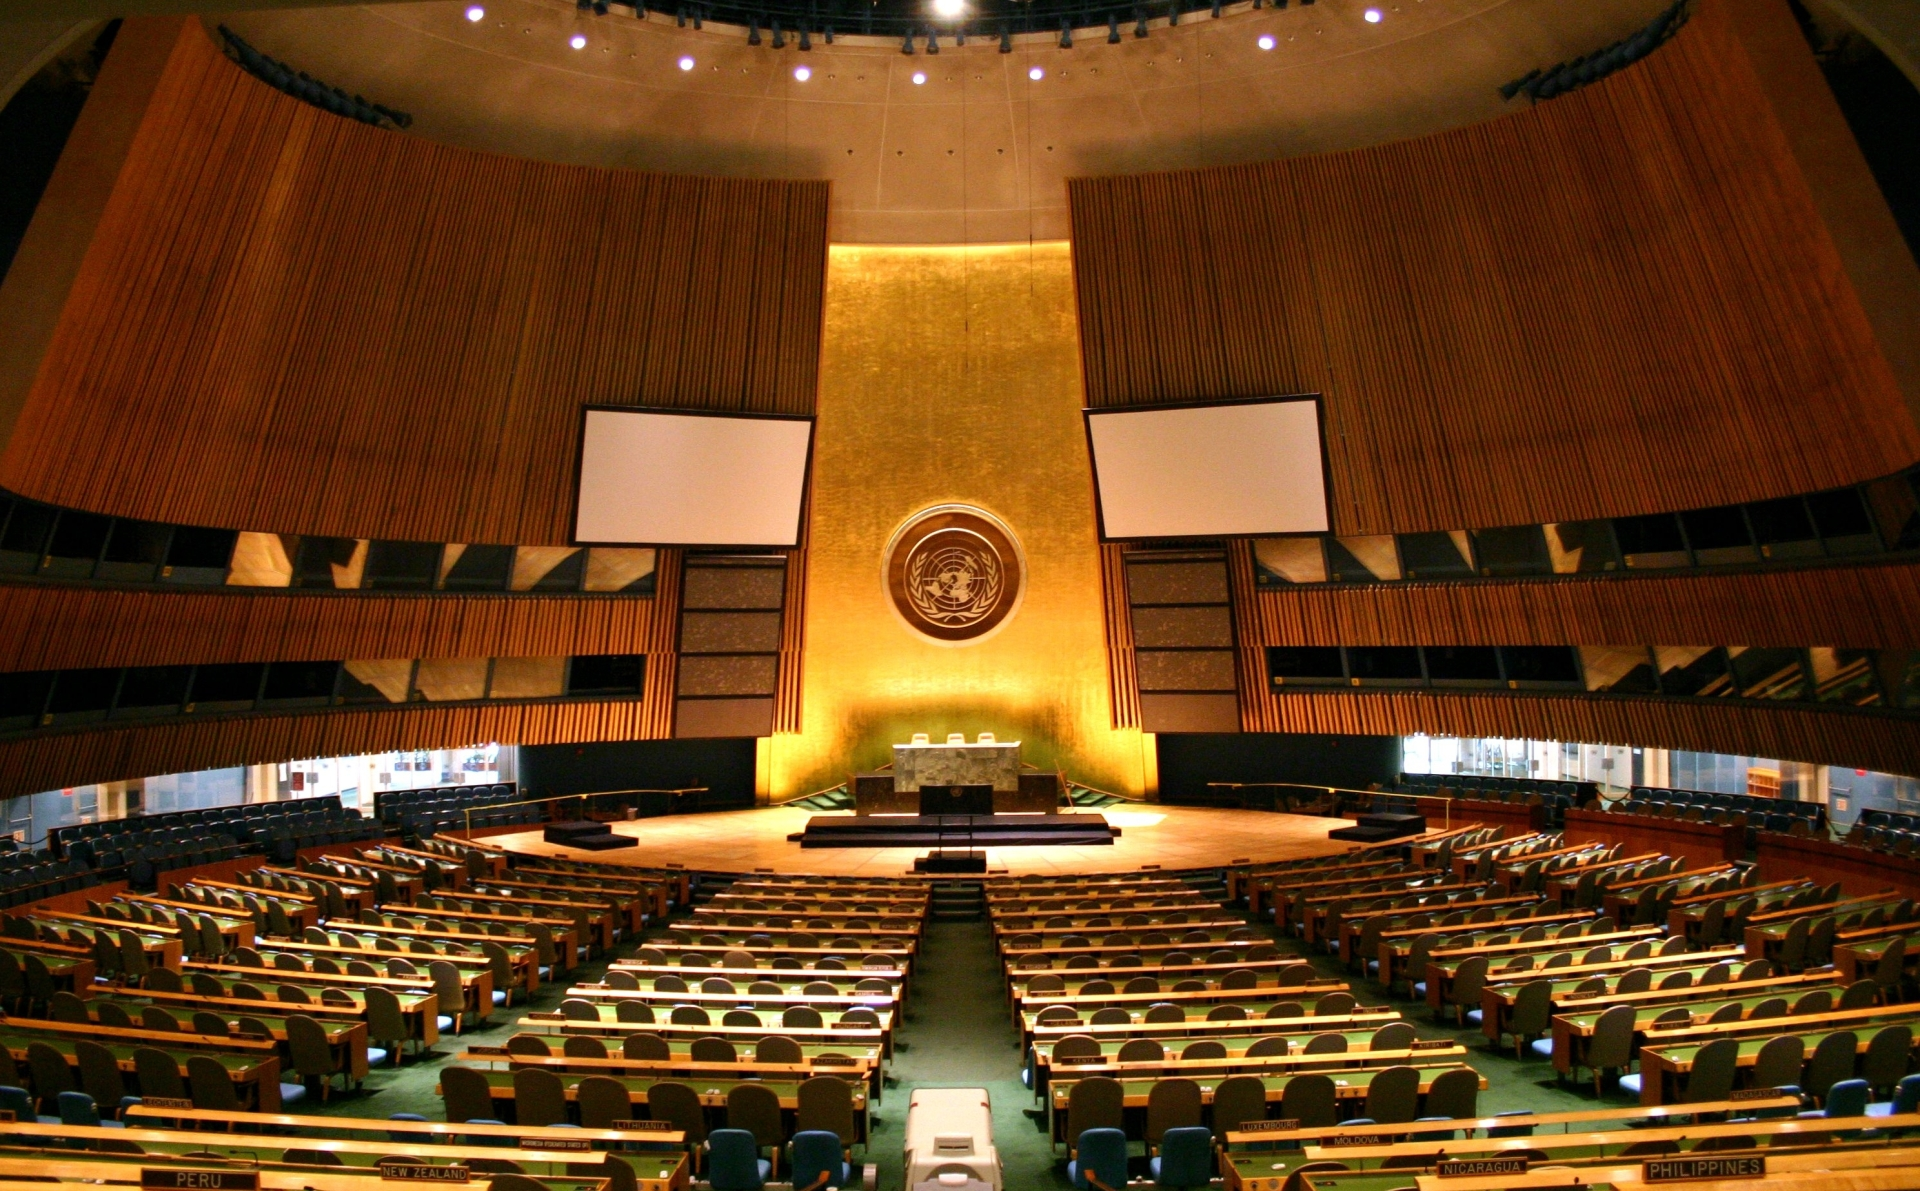 UN General Assembly hall Генассамблея ООН Генассамблея ООН